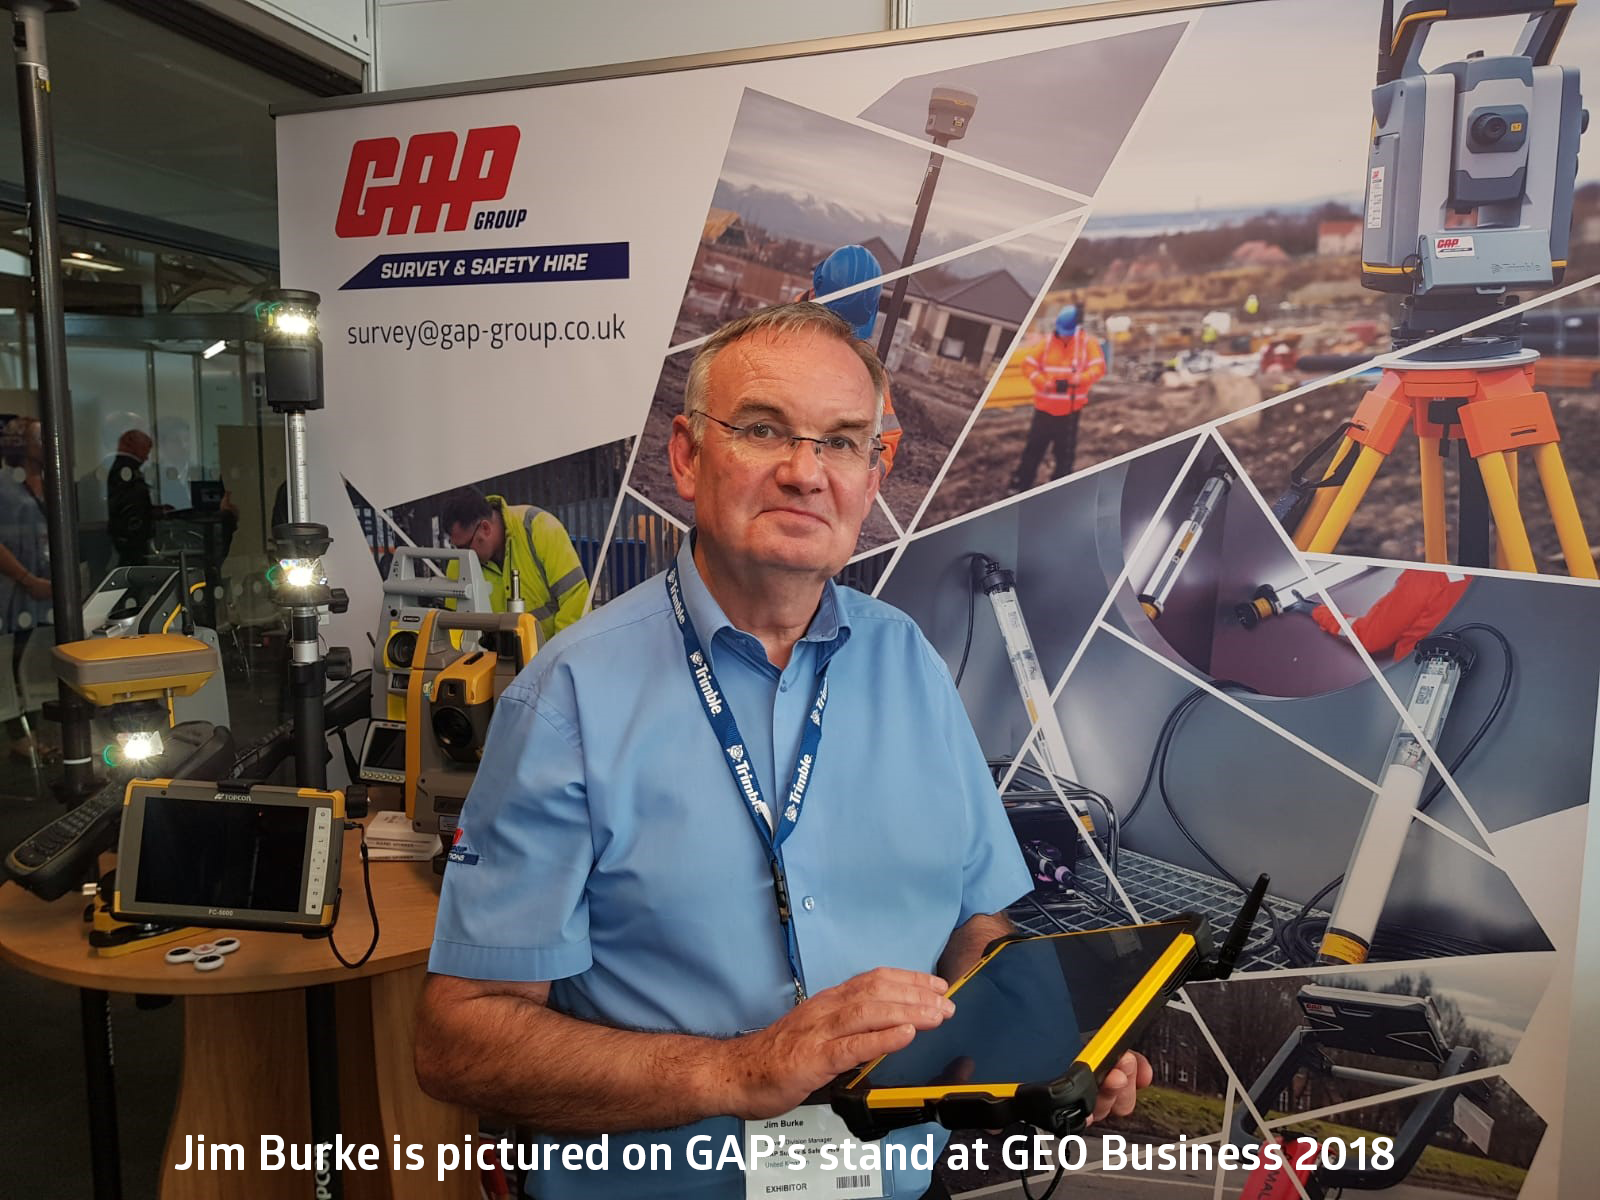 Jim Burke is pictured on GAP's stand at GEO Business 2018 (caption)